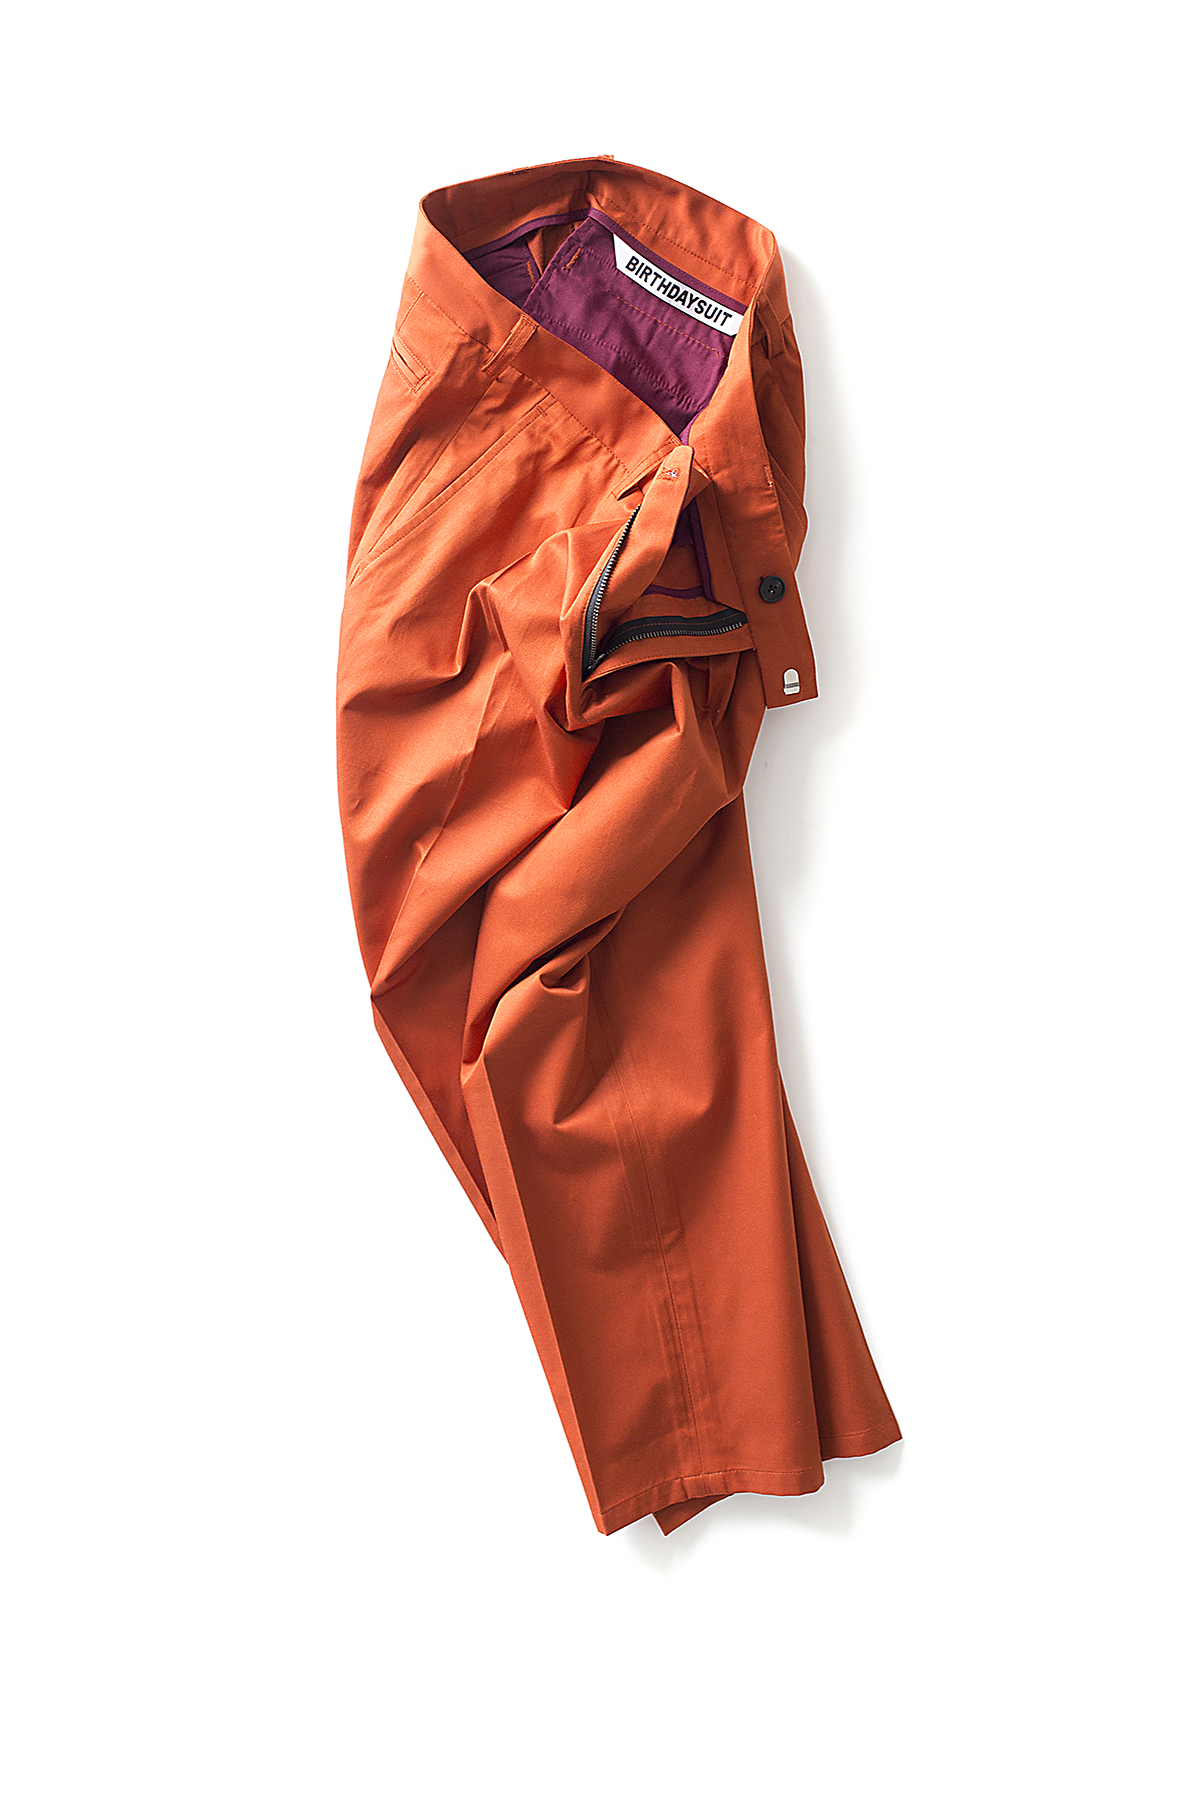 BIRTHDAYSUIT : Weekend Pants (Orange)